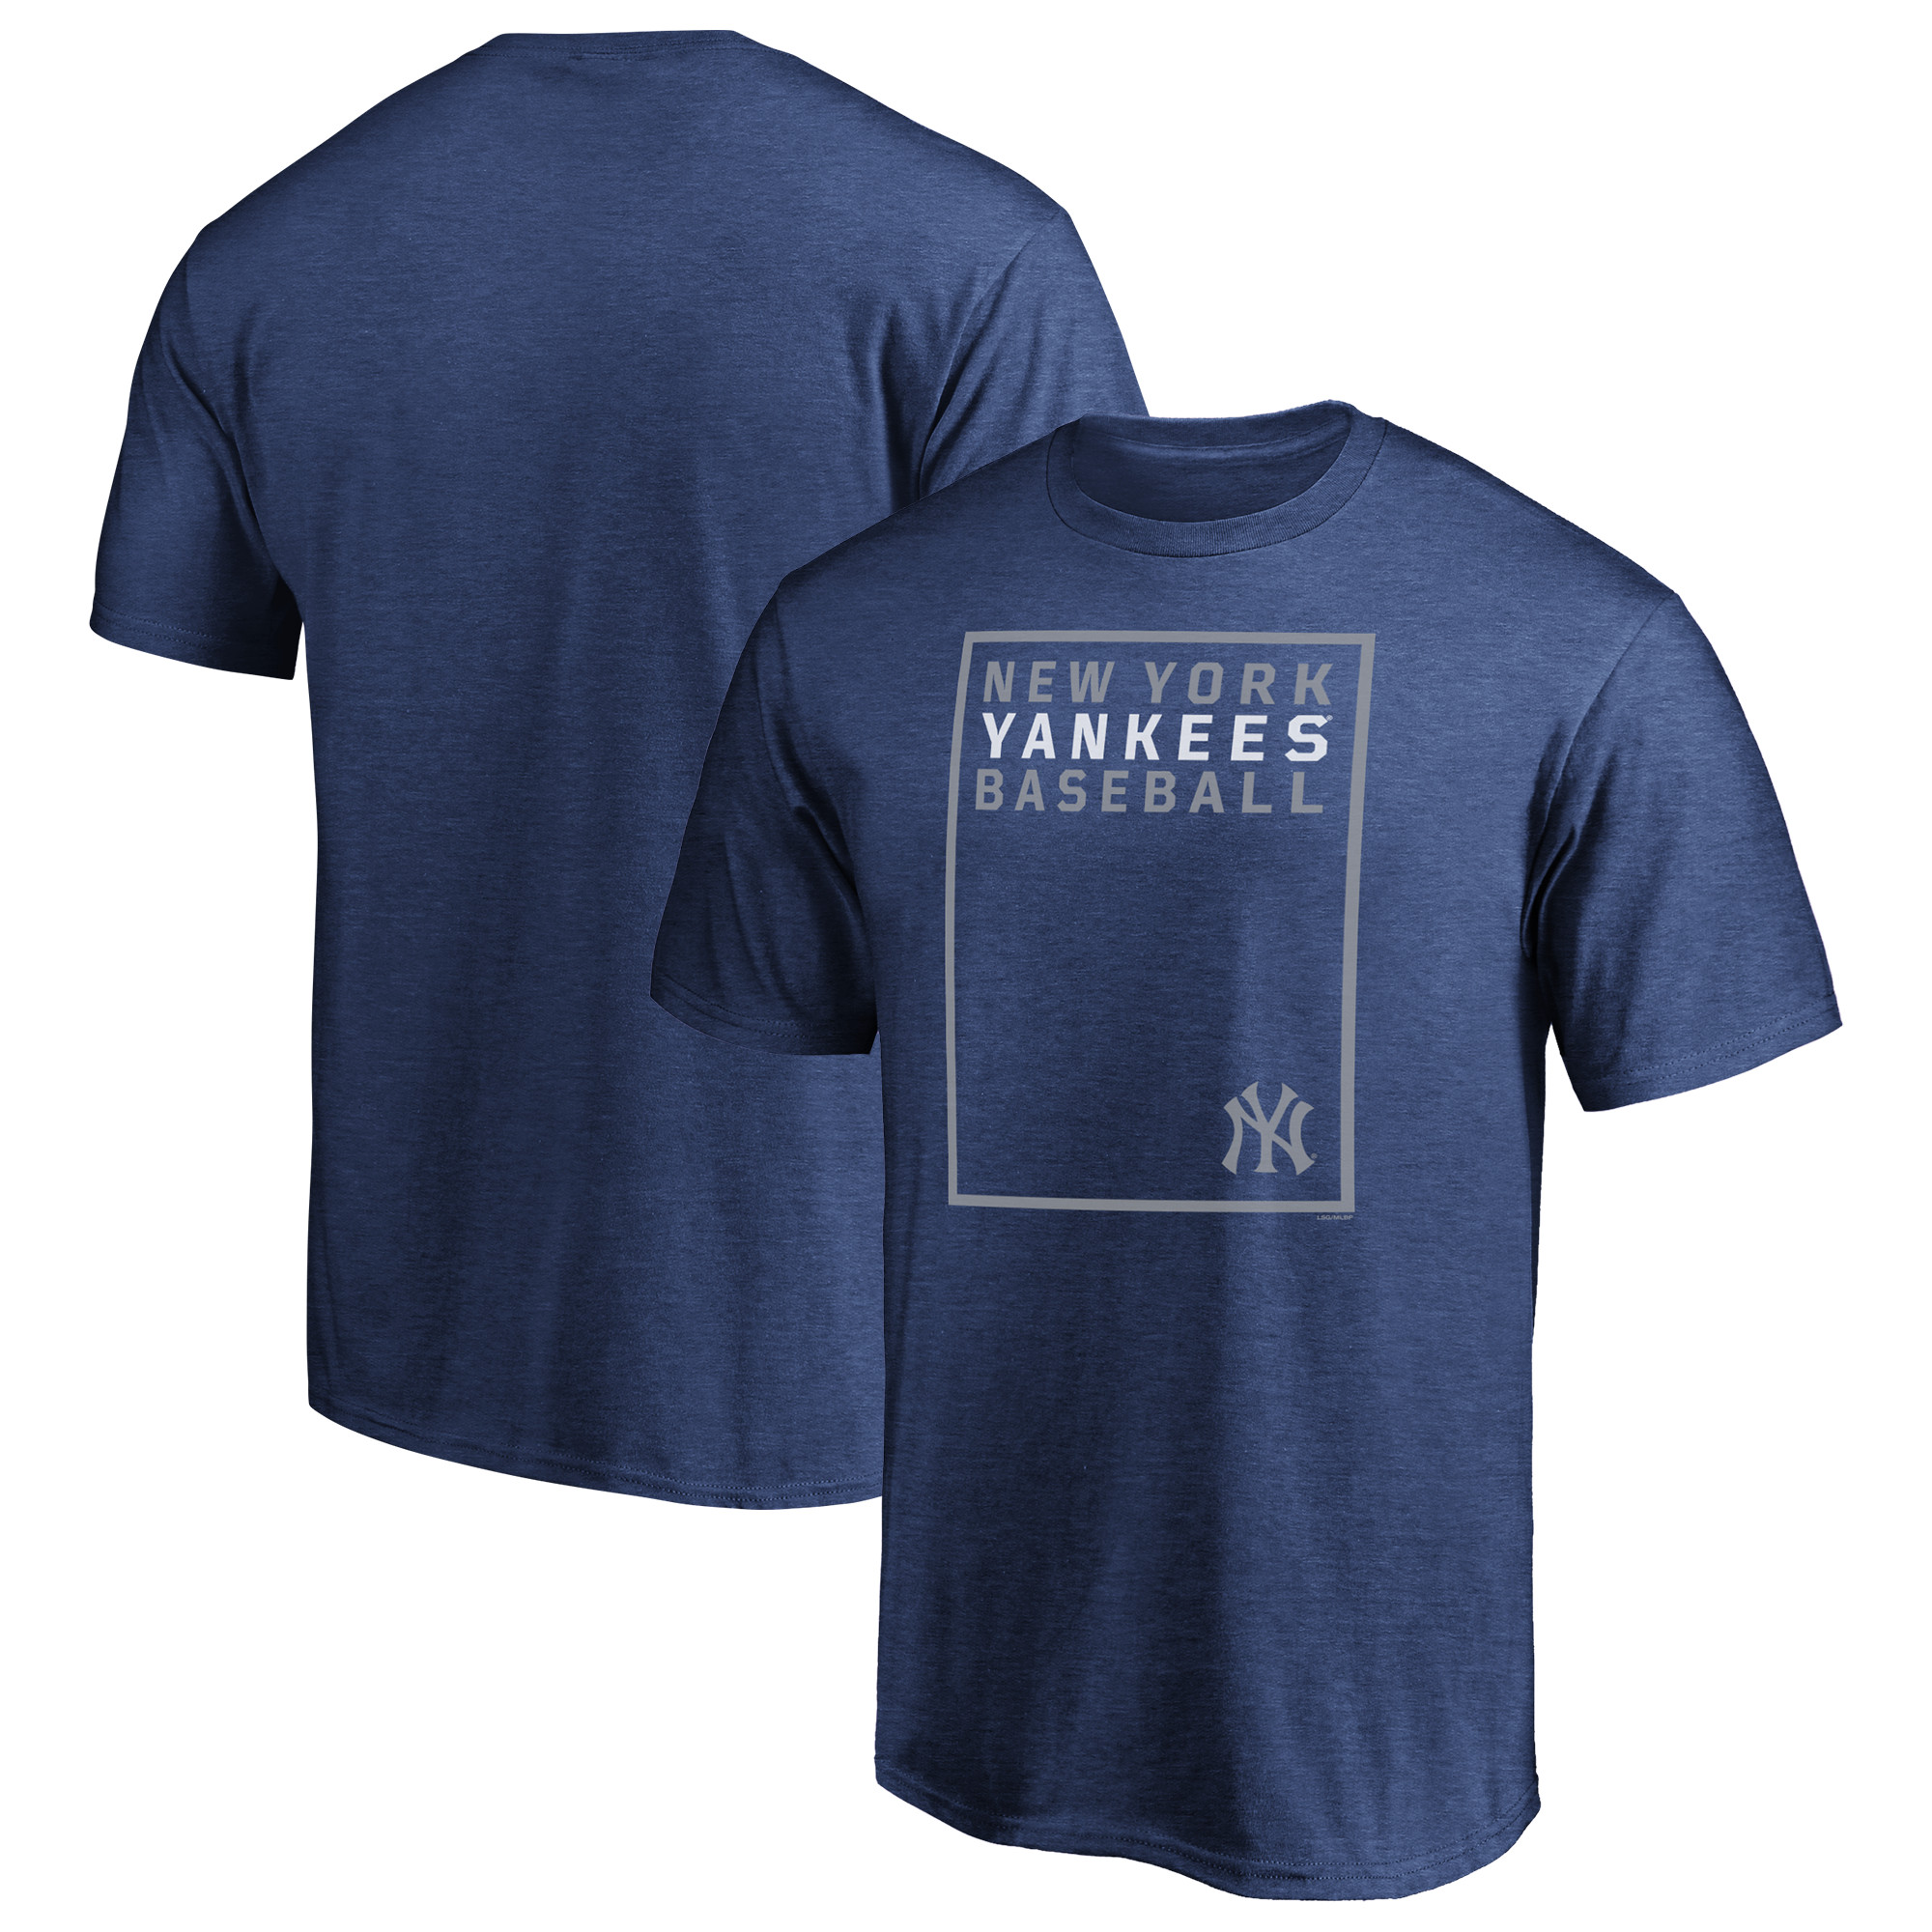 Men's Majestic Navy New York Yankees On the Grid T-Shirt